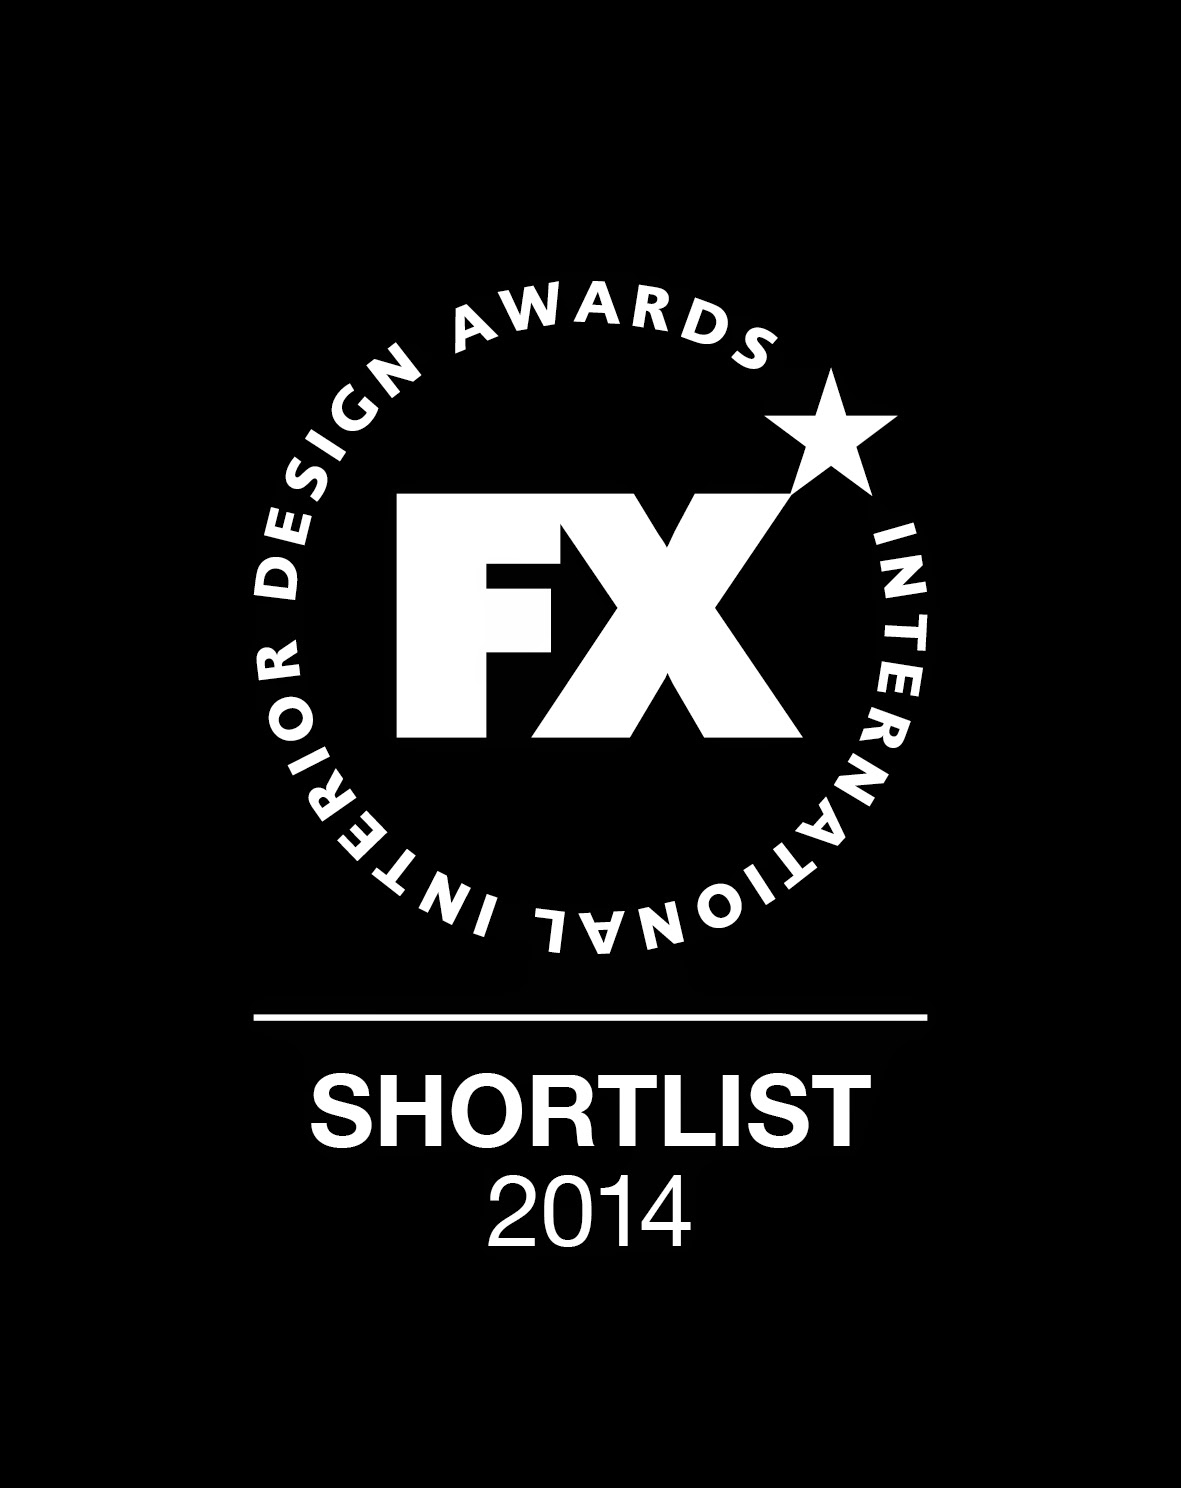 FX Awards Shortlist 2014 (black).jpg